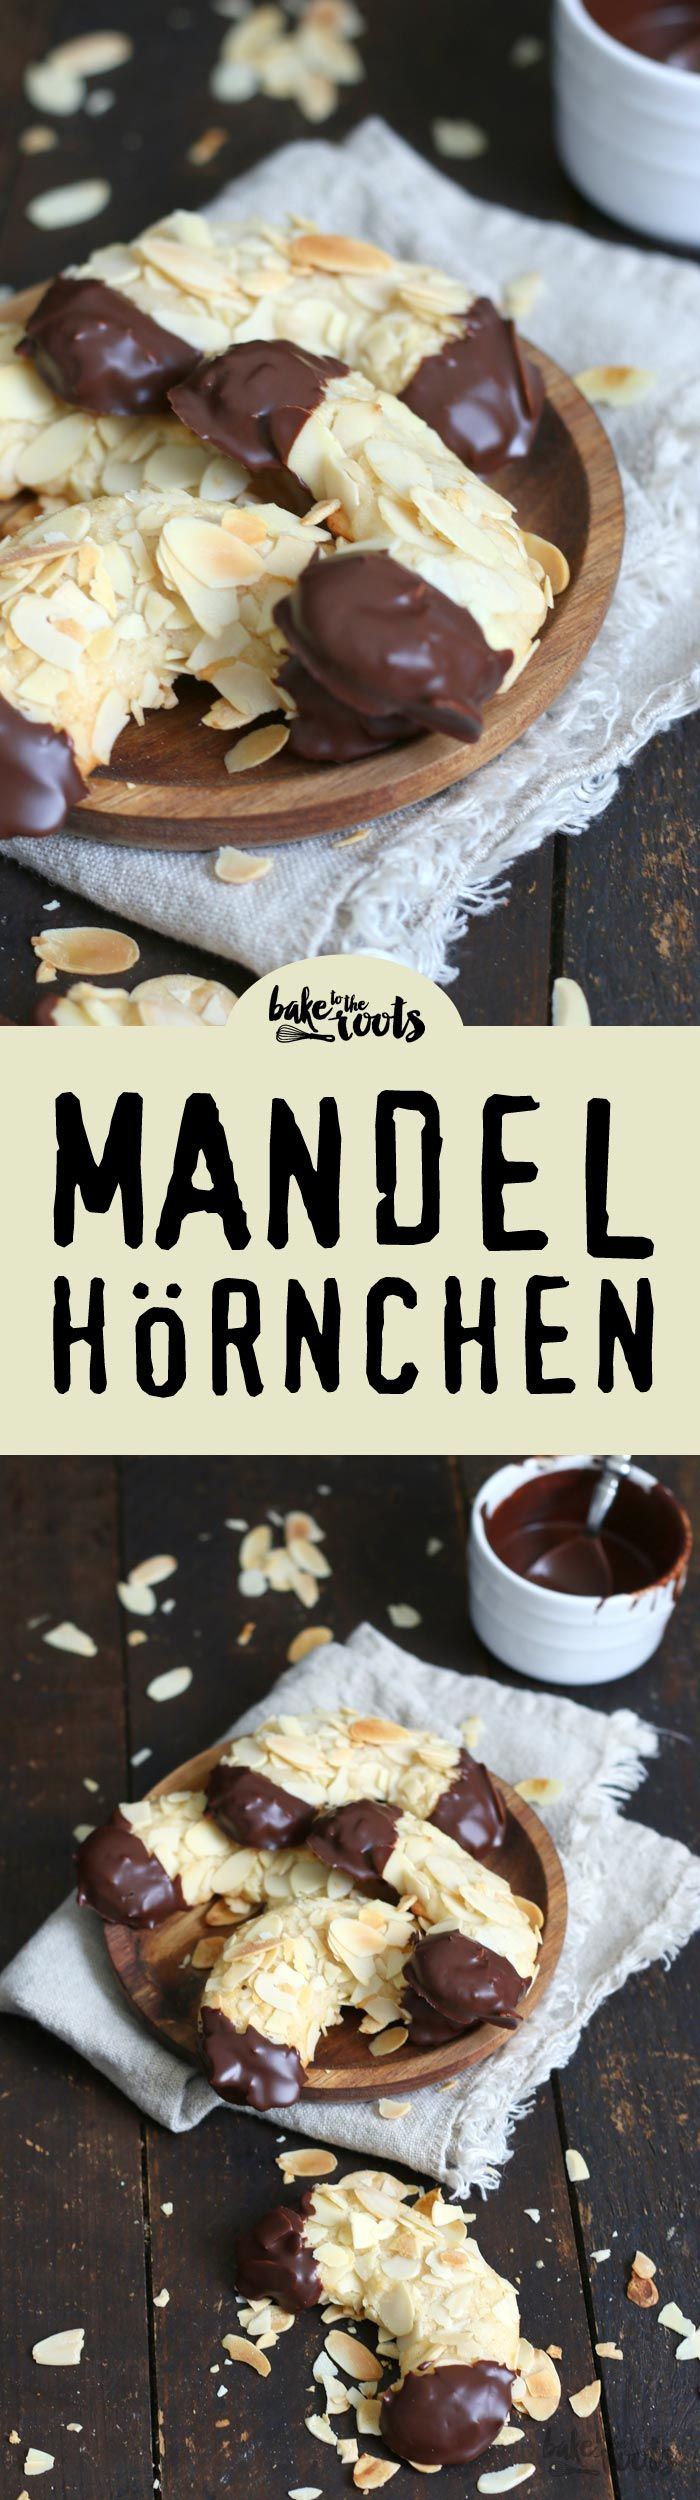 Mandelhörnchen | Bake to the roots